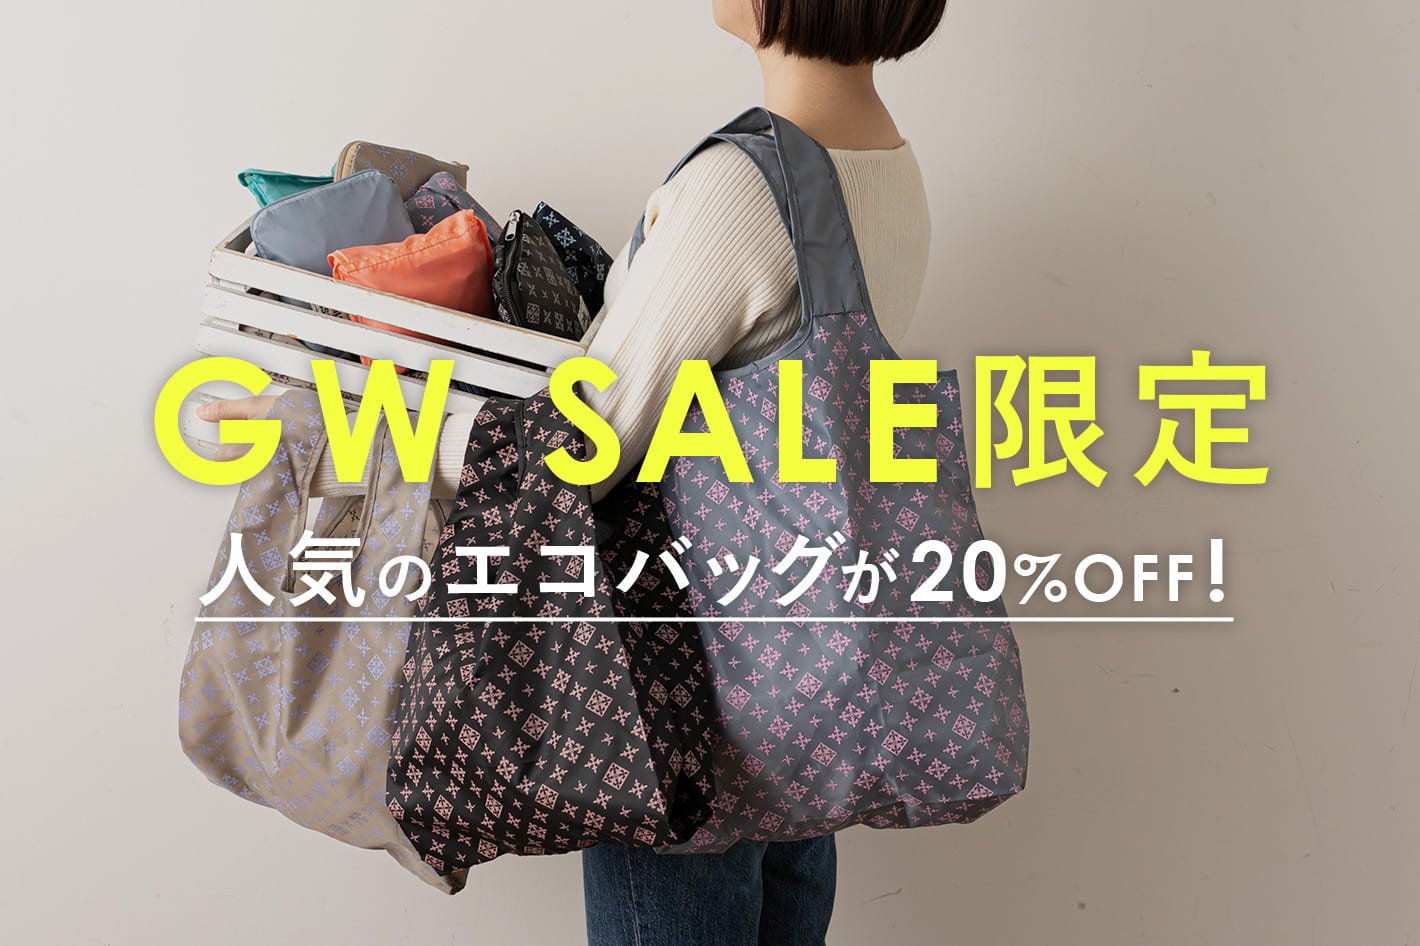 Daily russet ◆GW SALE開催中!◆エコバッグが20%OFF!